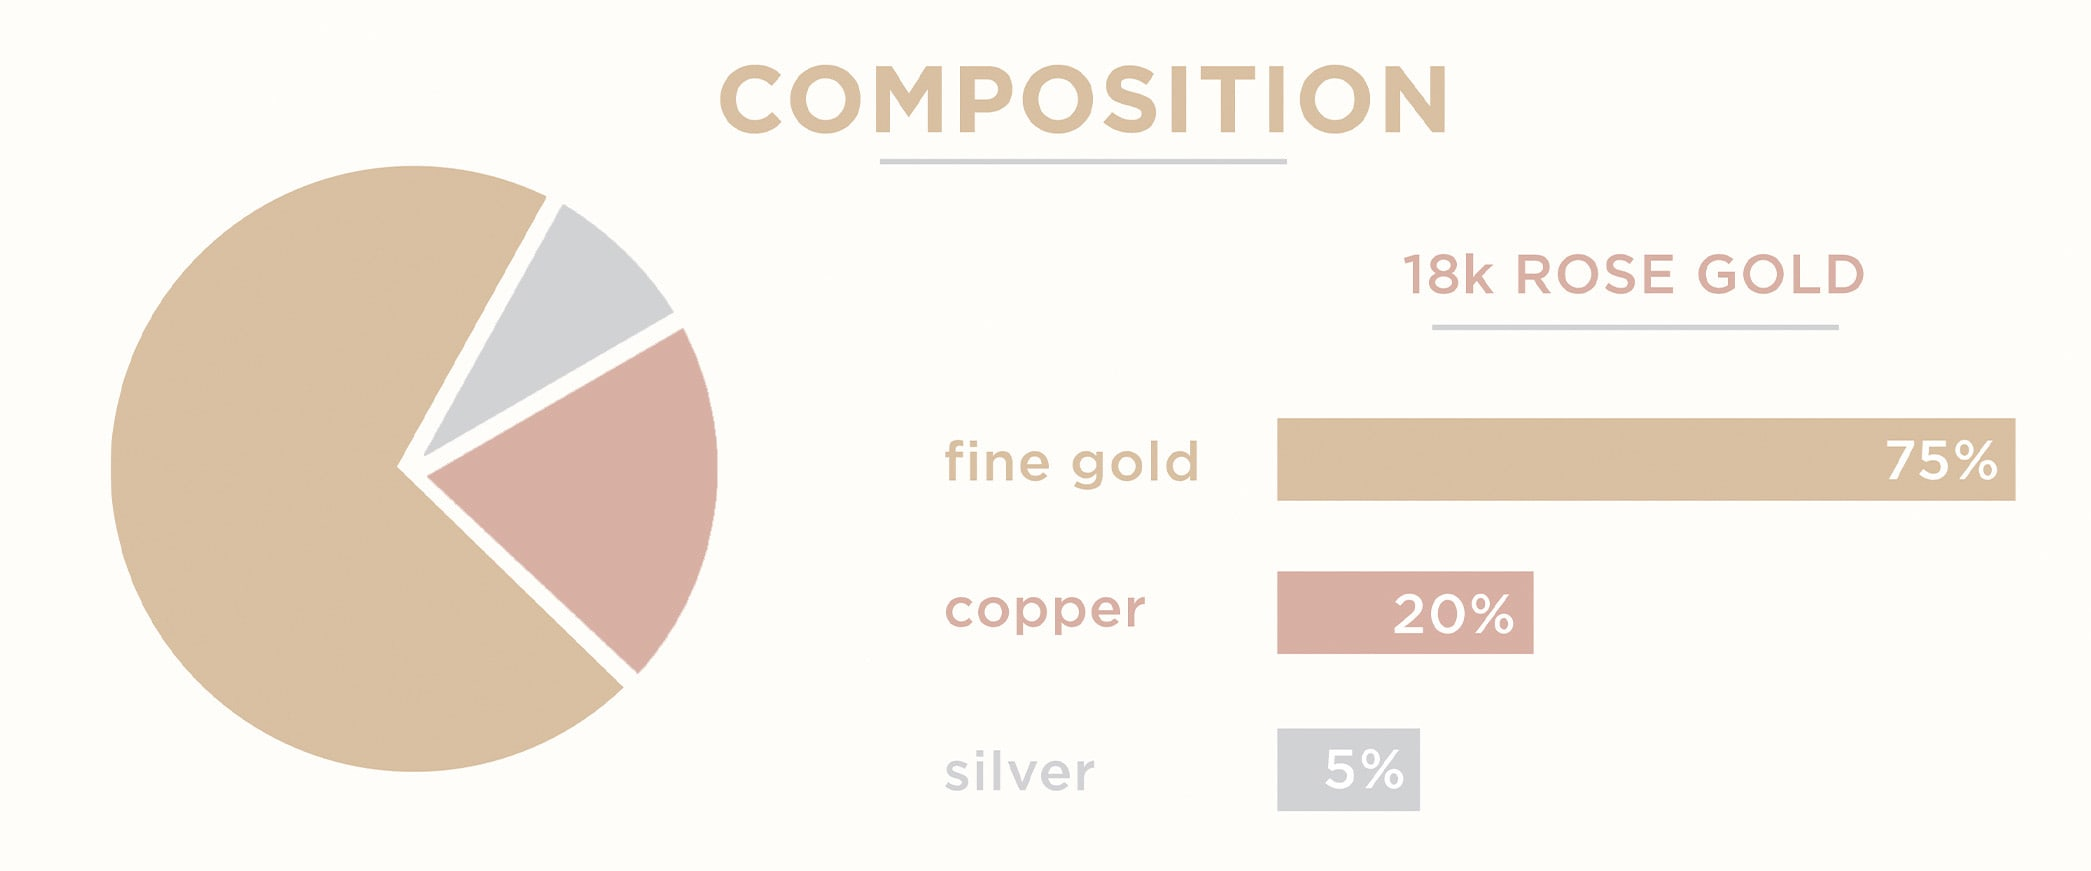 A chart showing the composition of rose gold